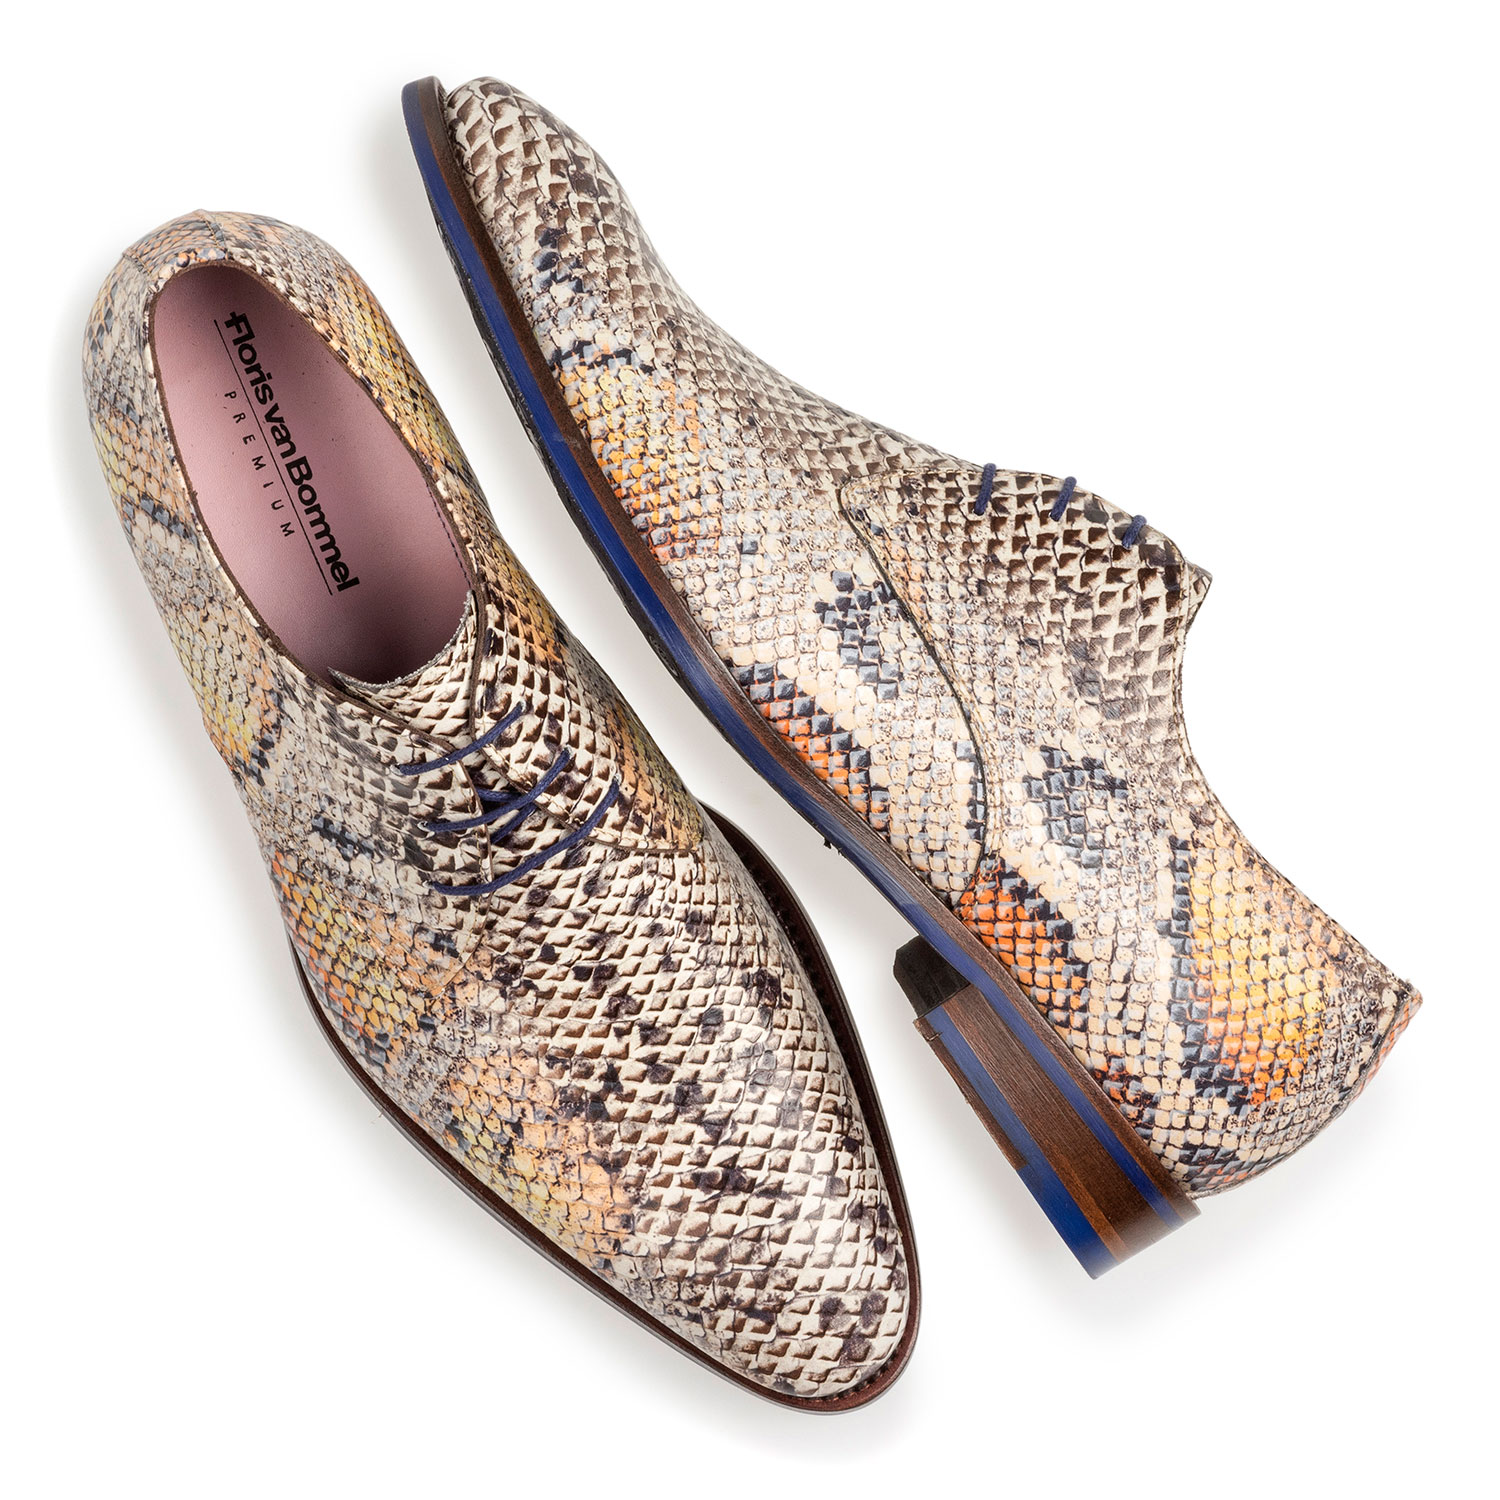 18224/02 - Premium lace shoe with an orange snake print